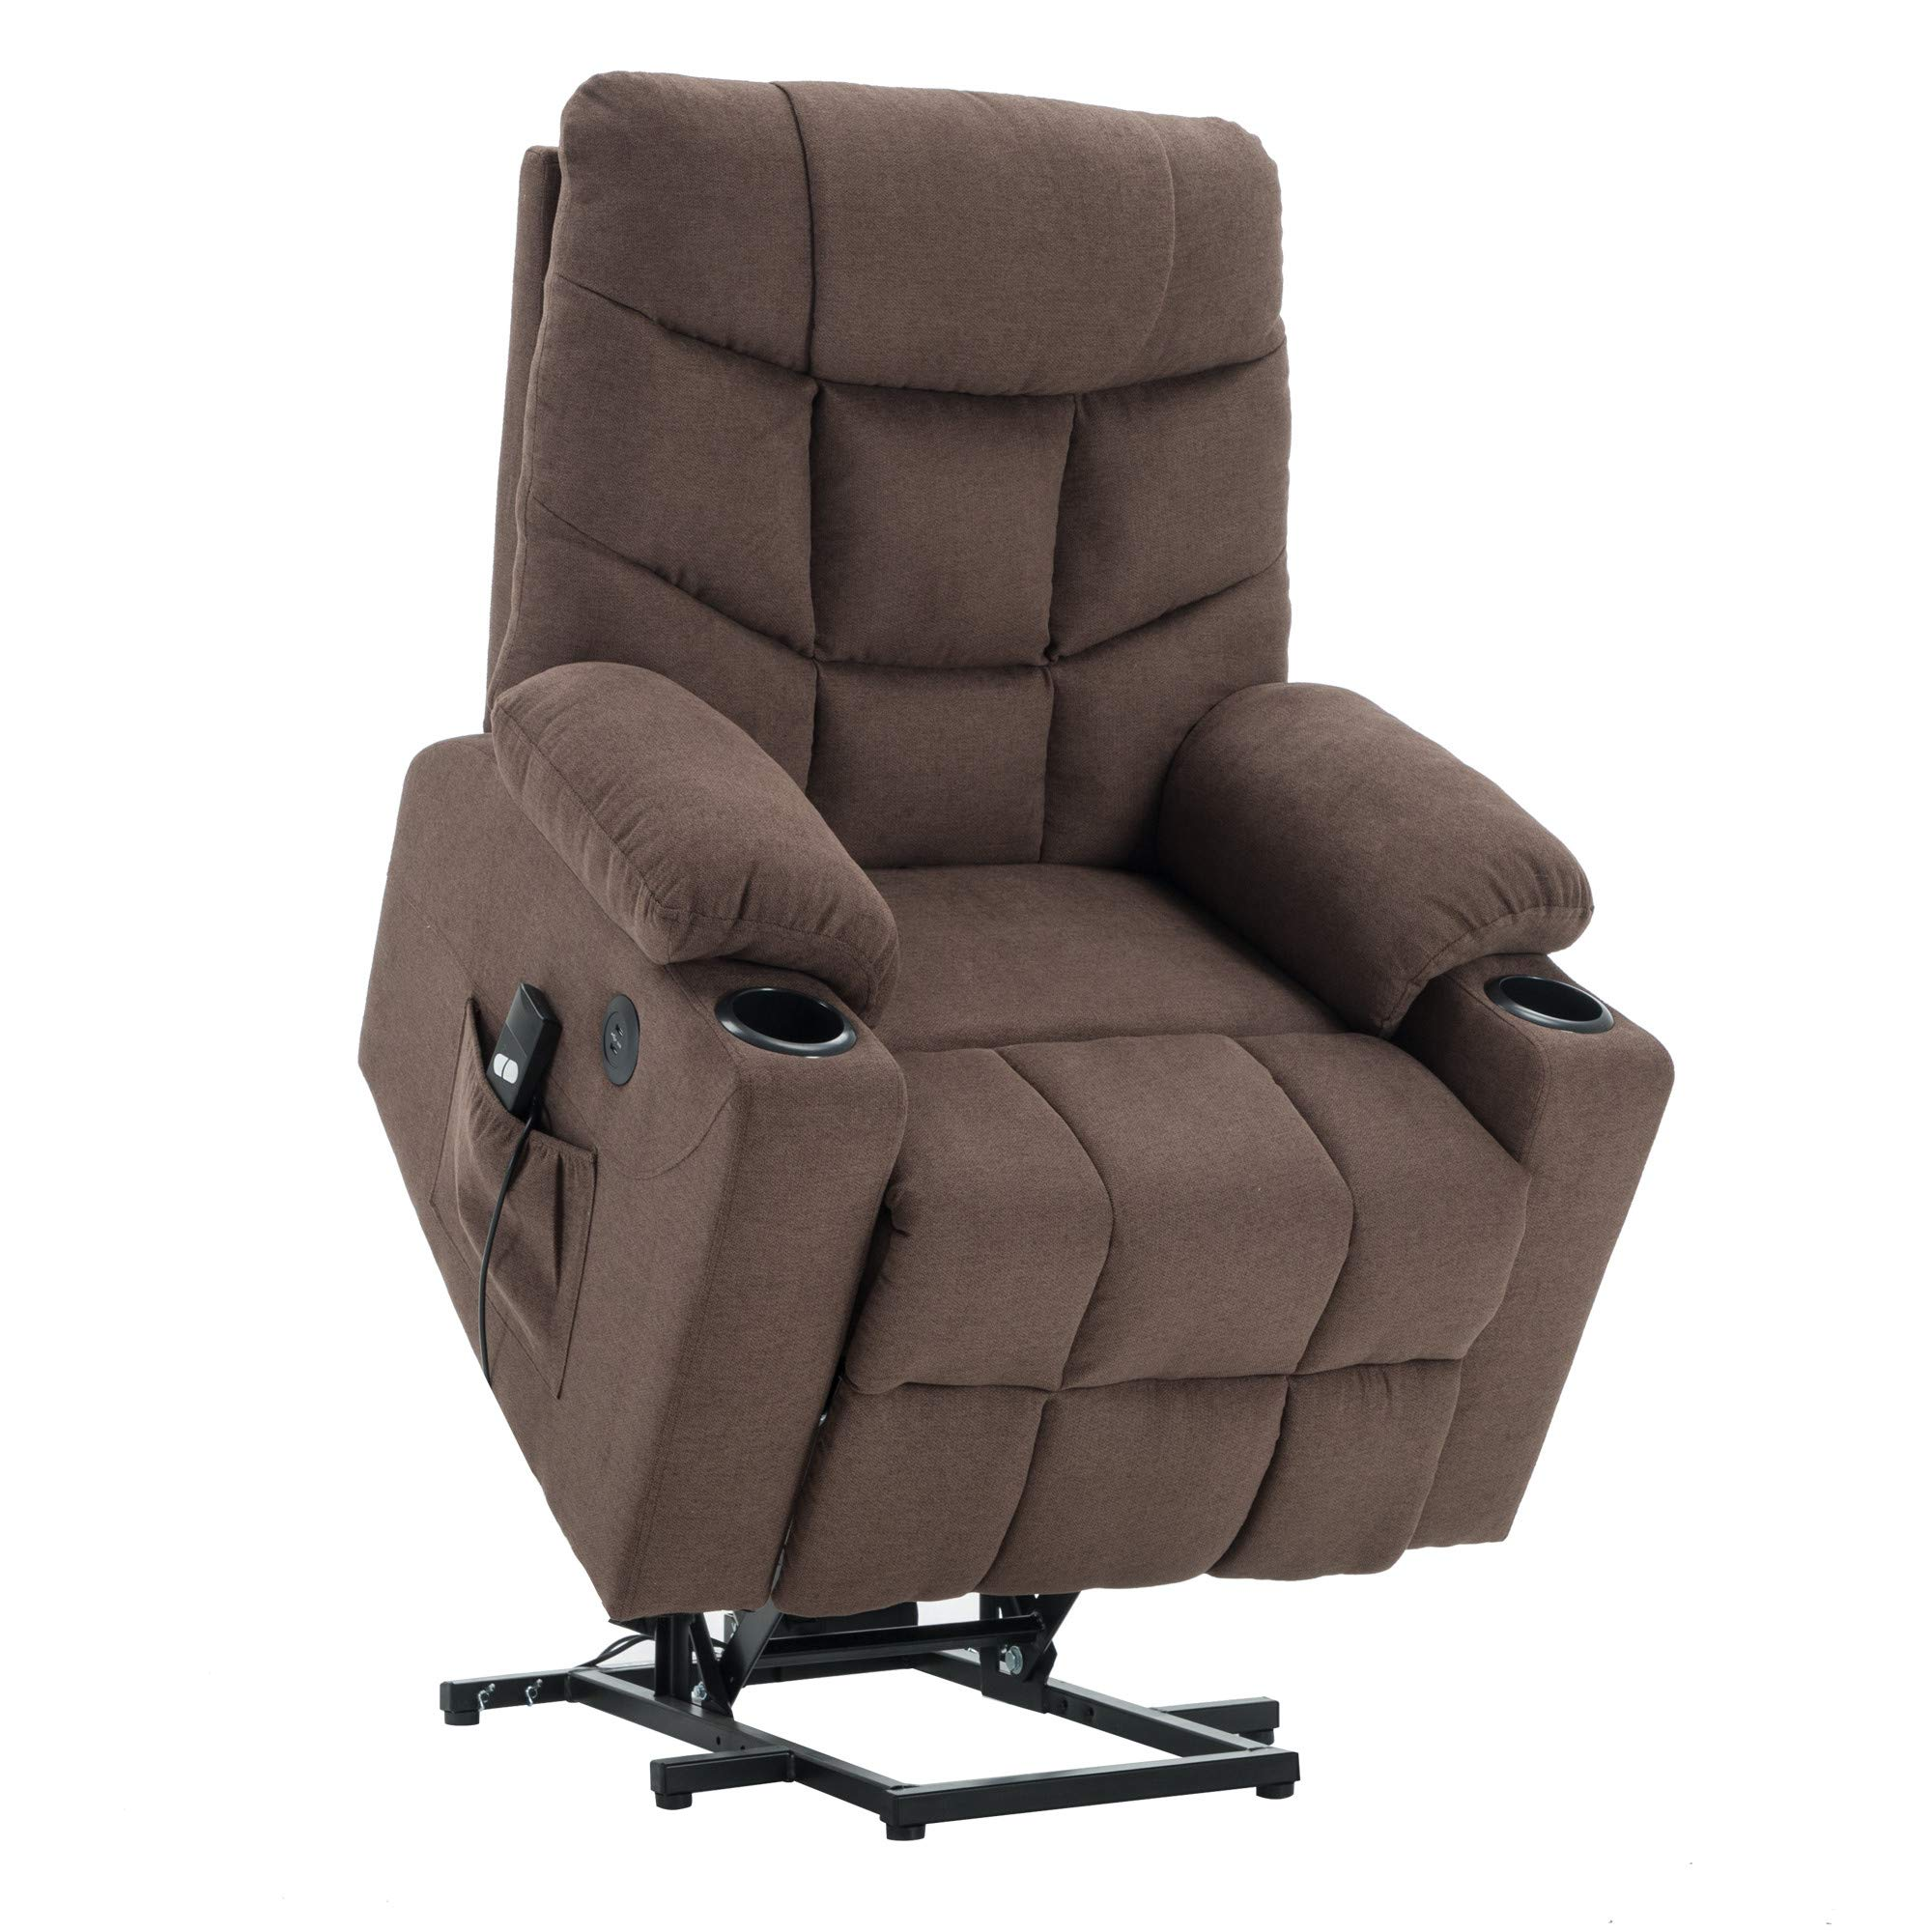 Power Lift Recliner Chair TUV Lift Motor Lounge w/Remote Control Dual USB Charging Ports Cup Holders Fabric Sofa Cloth 7286 (Brown)